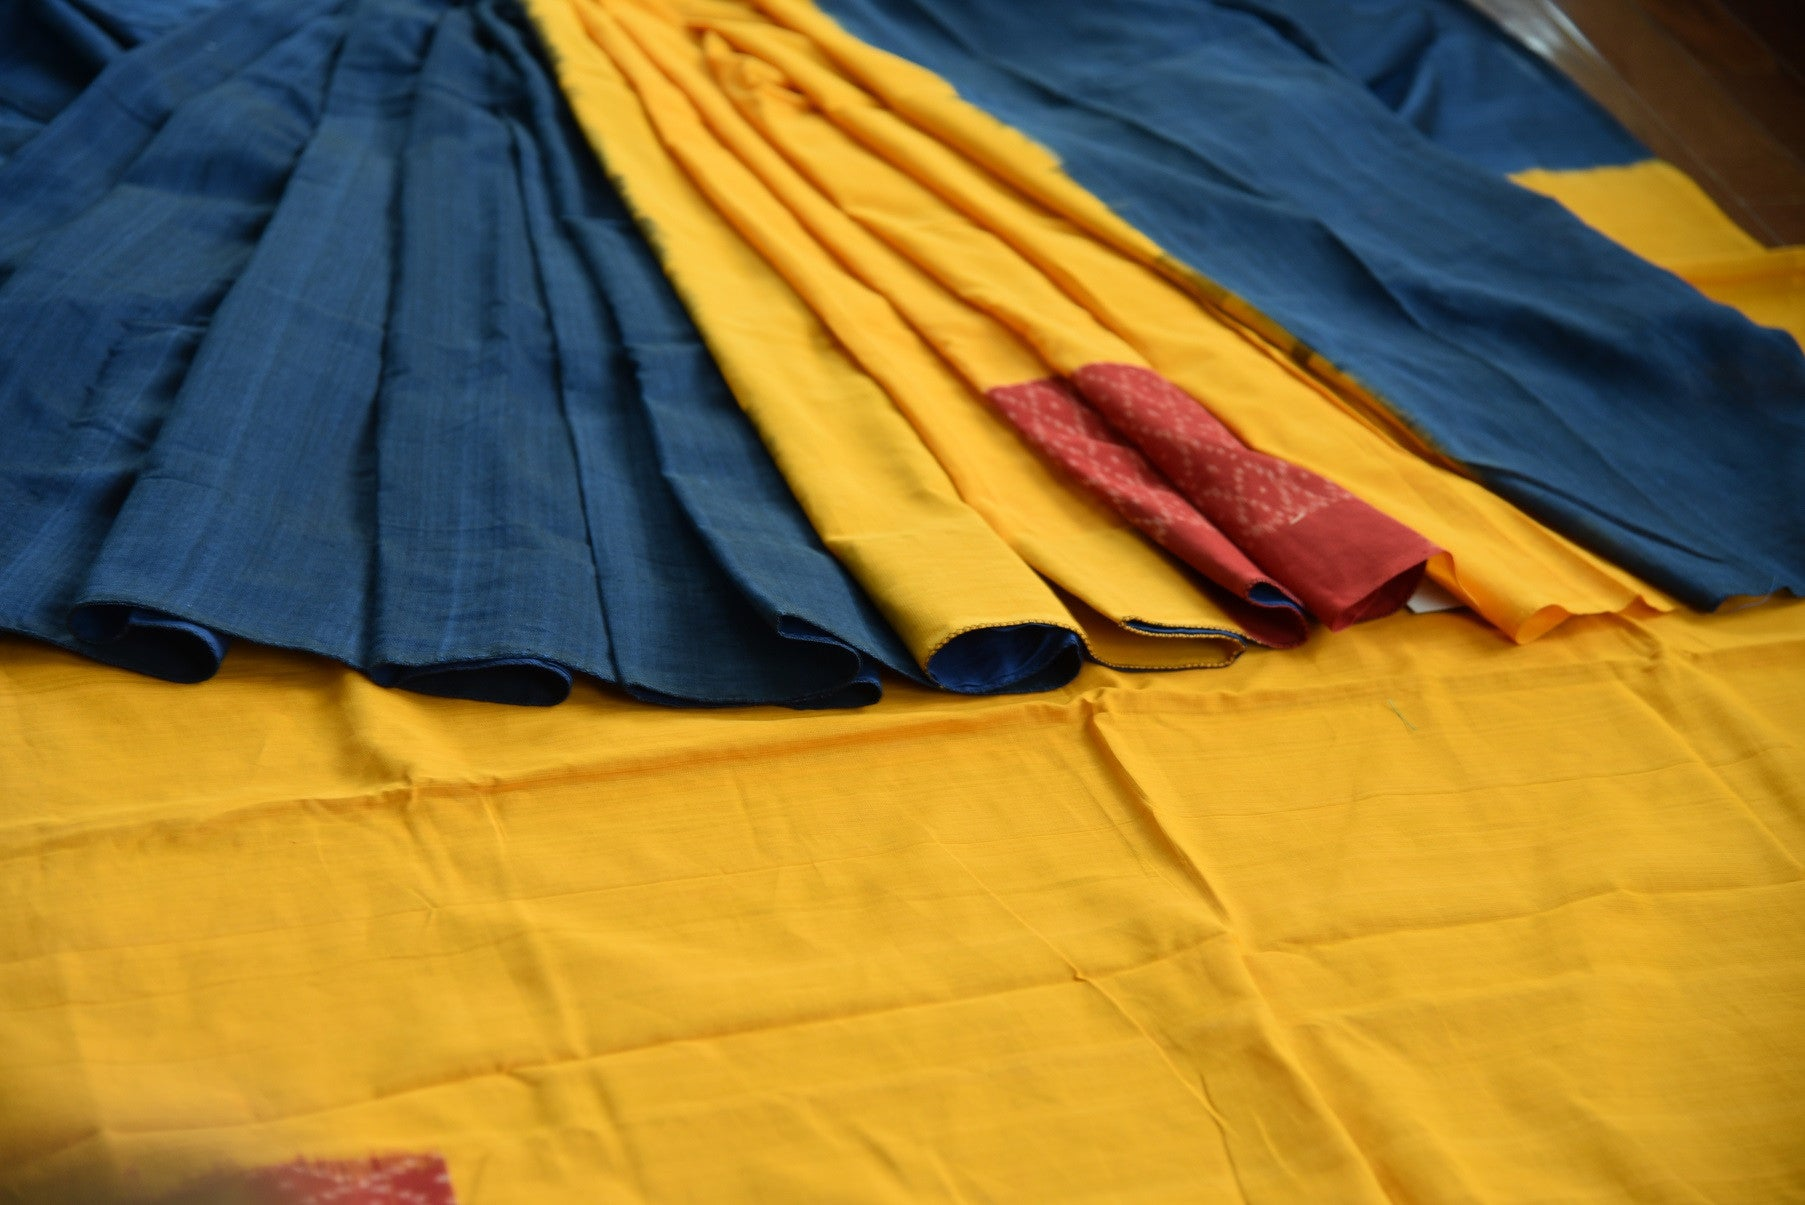 90D435 Bold blue, yellow & red, plain sari available at our online ethnic fashion store Pure Elegance in USA. The lovely cotton ikkat saree is a great Indian party wear outfit.